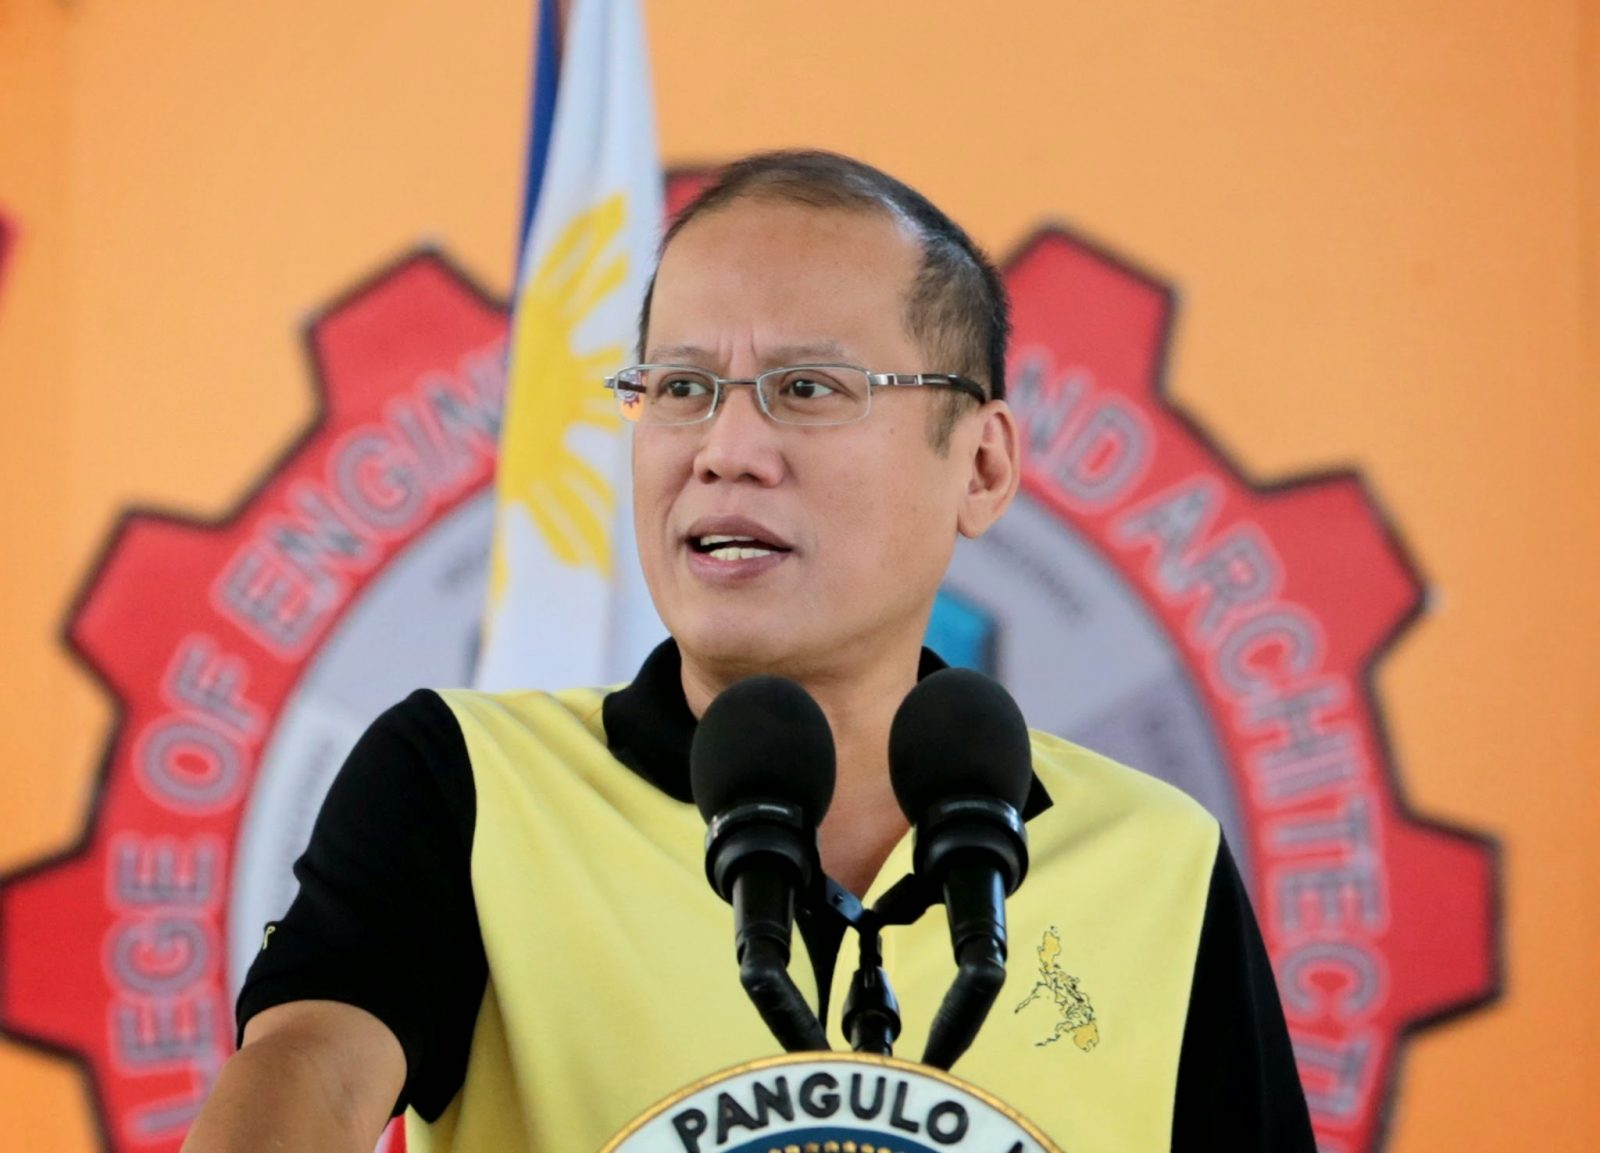 President Benigno S. Aquino III delivers his speech during the launching of the Bohol Fabrication Laboratory (FABLAB) Shared Service Facility Project and the 1st FABLAB Asian Network Boot Camp and Conference at the Bohol Island State University (BISU) in Tagbilaran City, Bohol on Friday (May 02). (Photo by Benhur Arcayan/ Malacañang Photo Bureau)